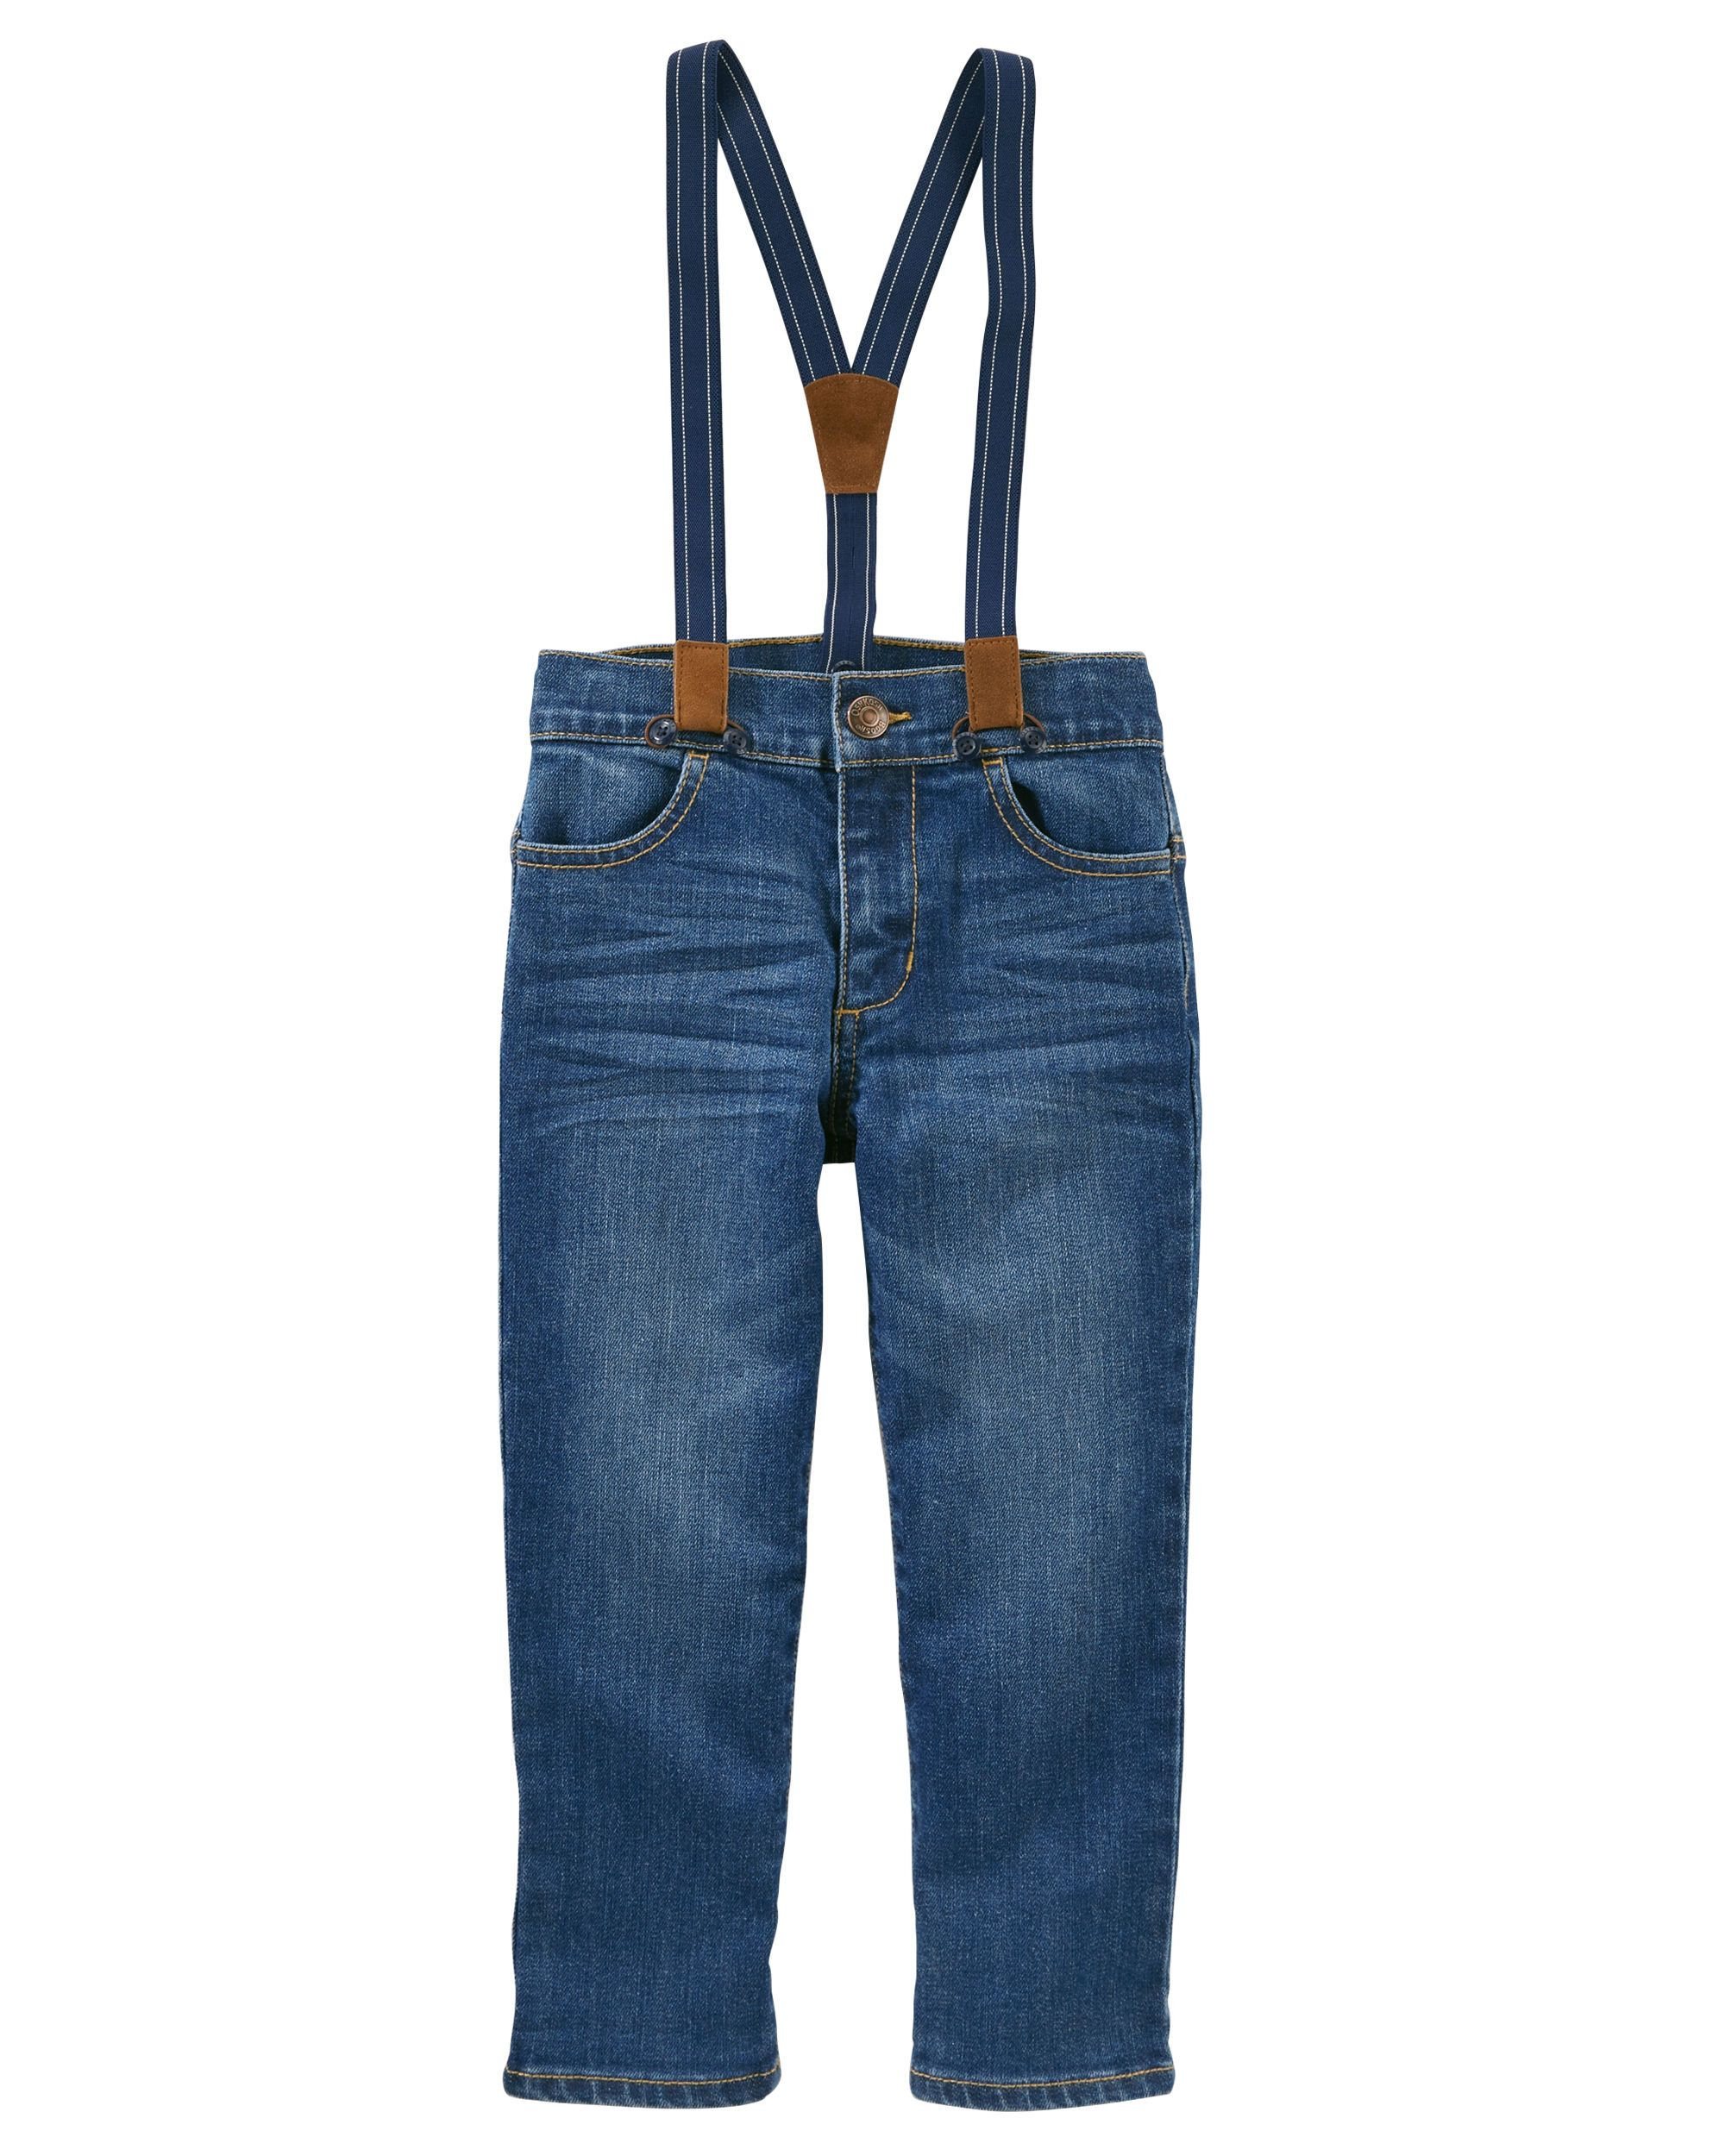 With removable suspenders, this denim is a genuine OshKosh favorite. Pair these jeans with a plaid button-front for top-notch style.